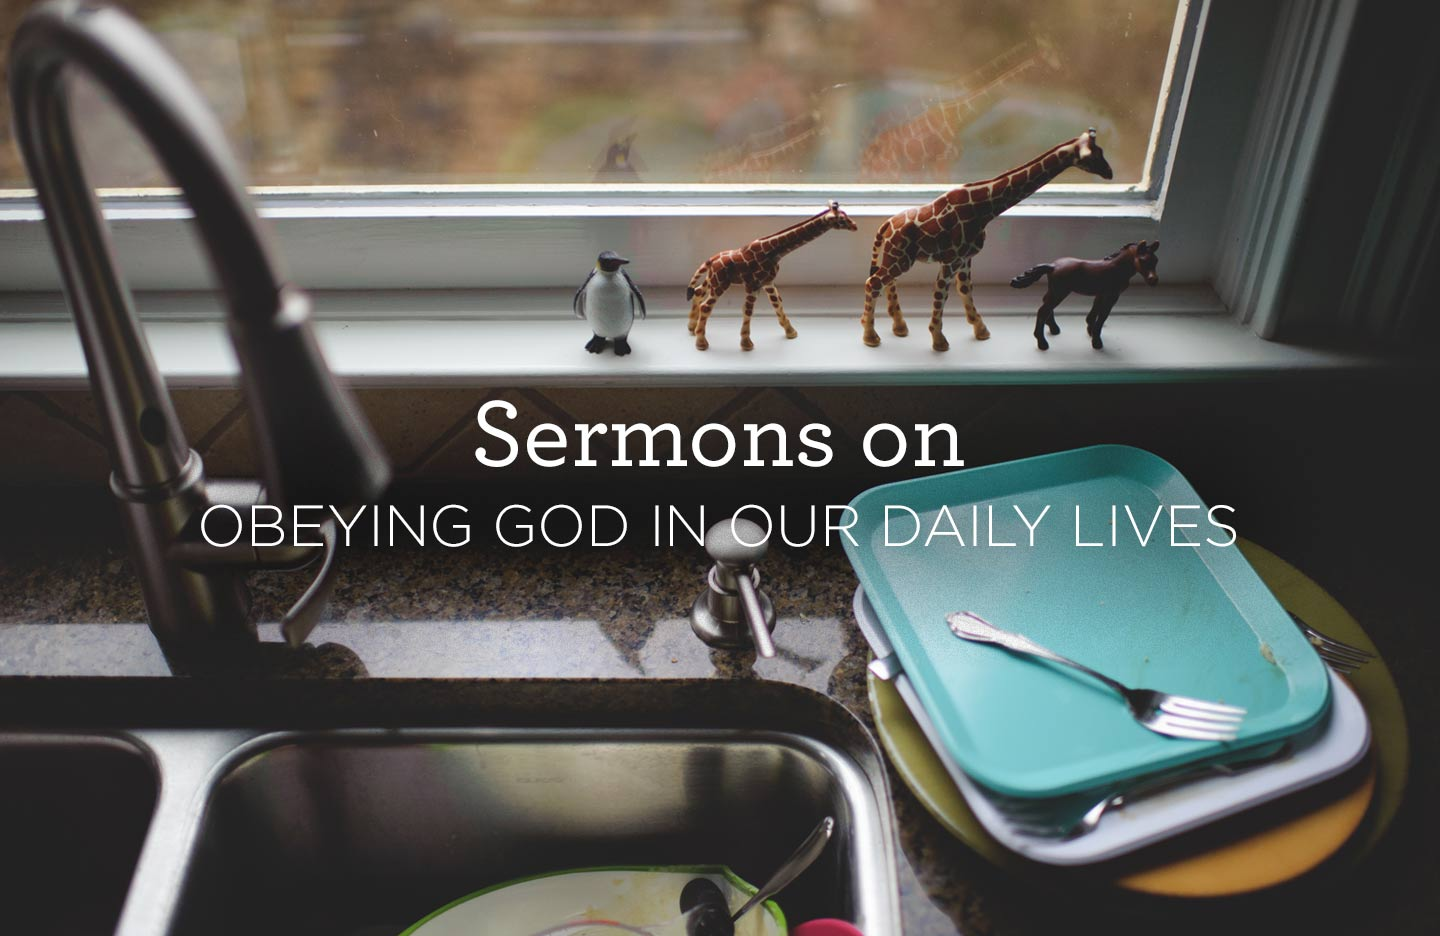 Sermons-on-Obeying-God-in-Our-Daily-Lives2